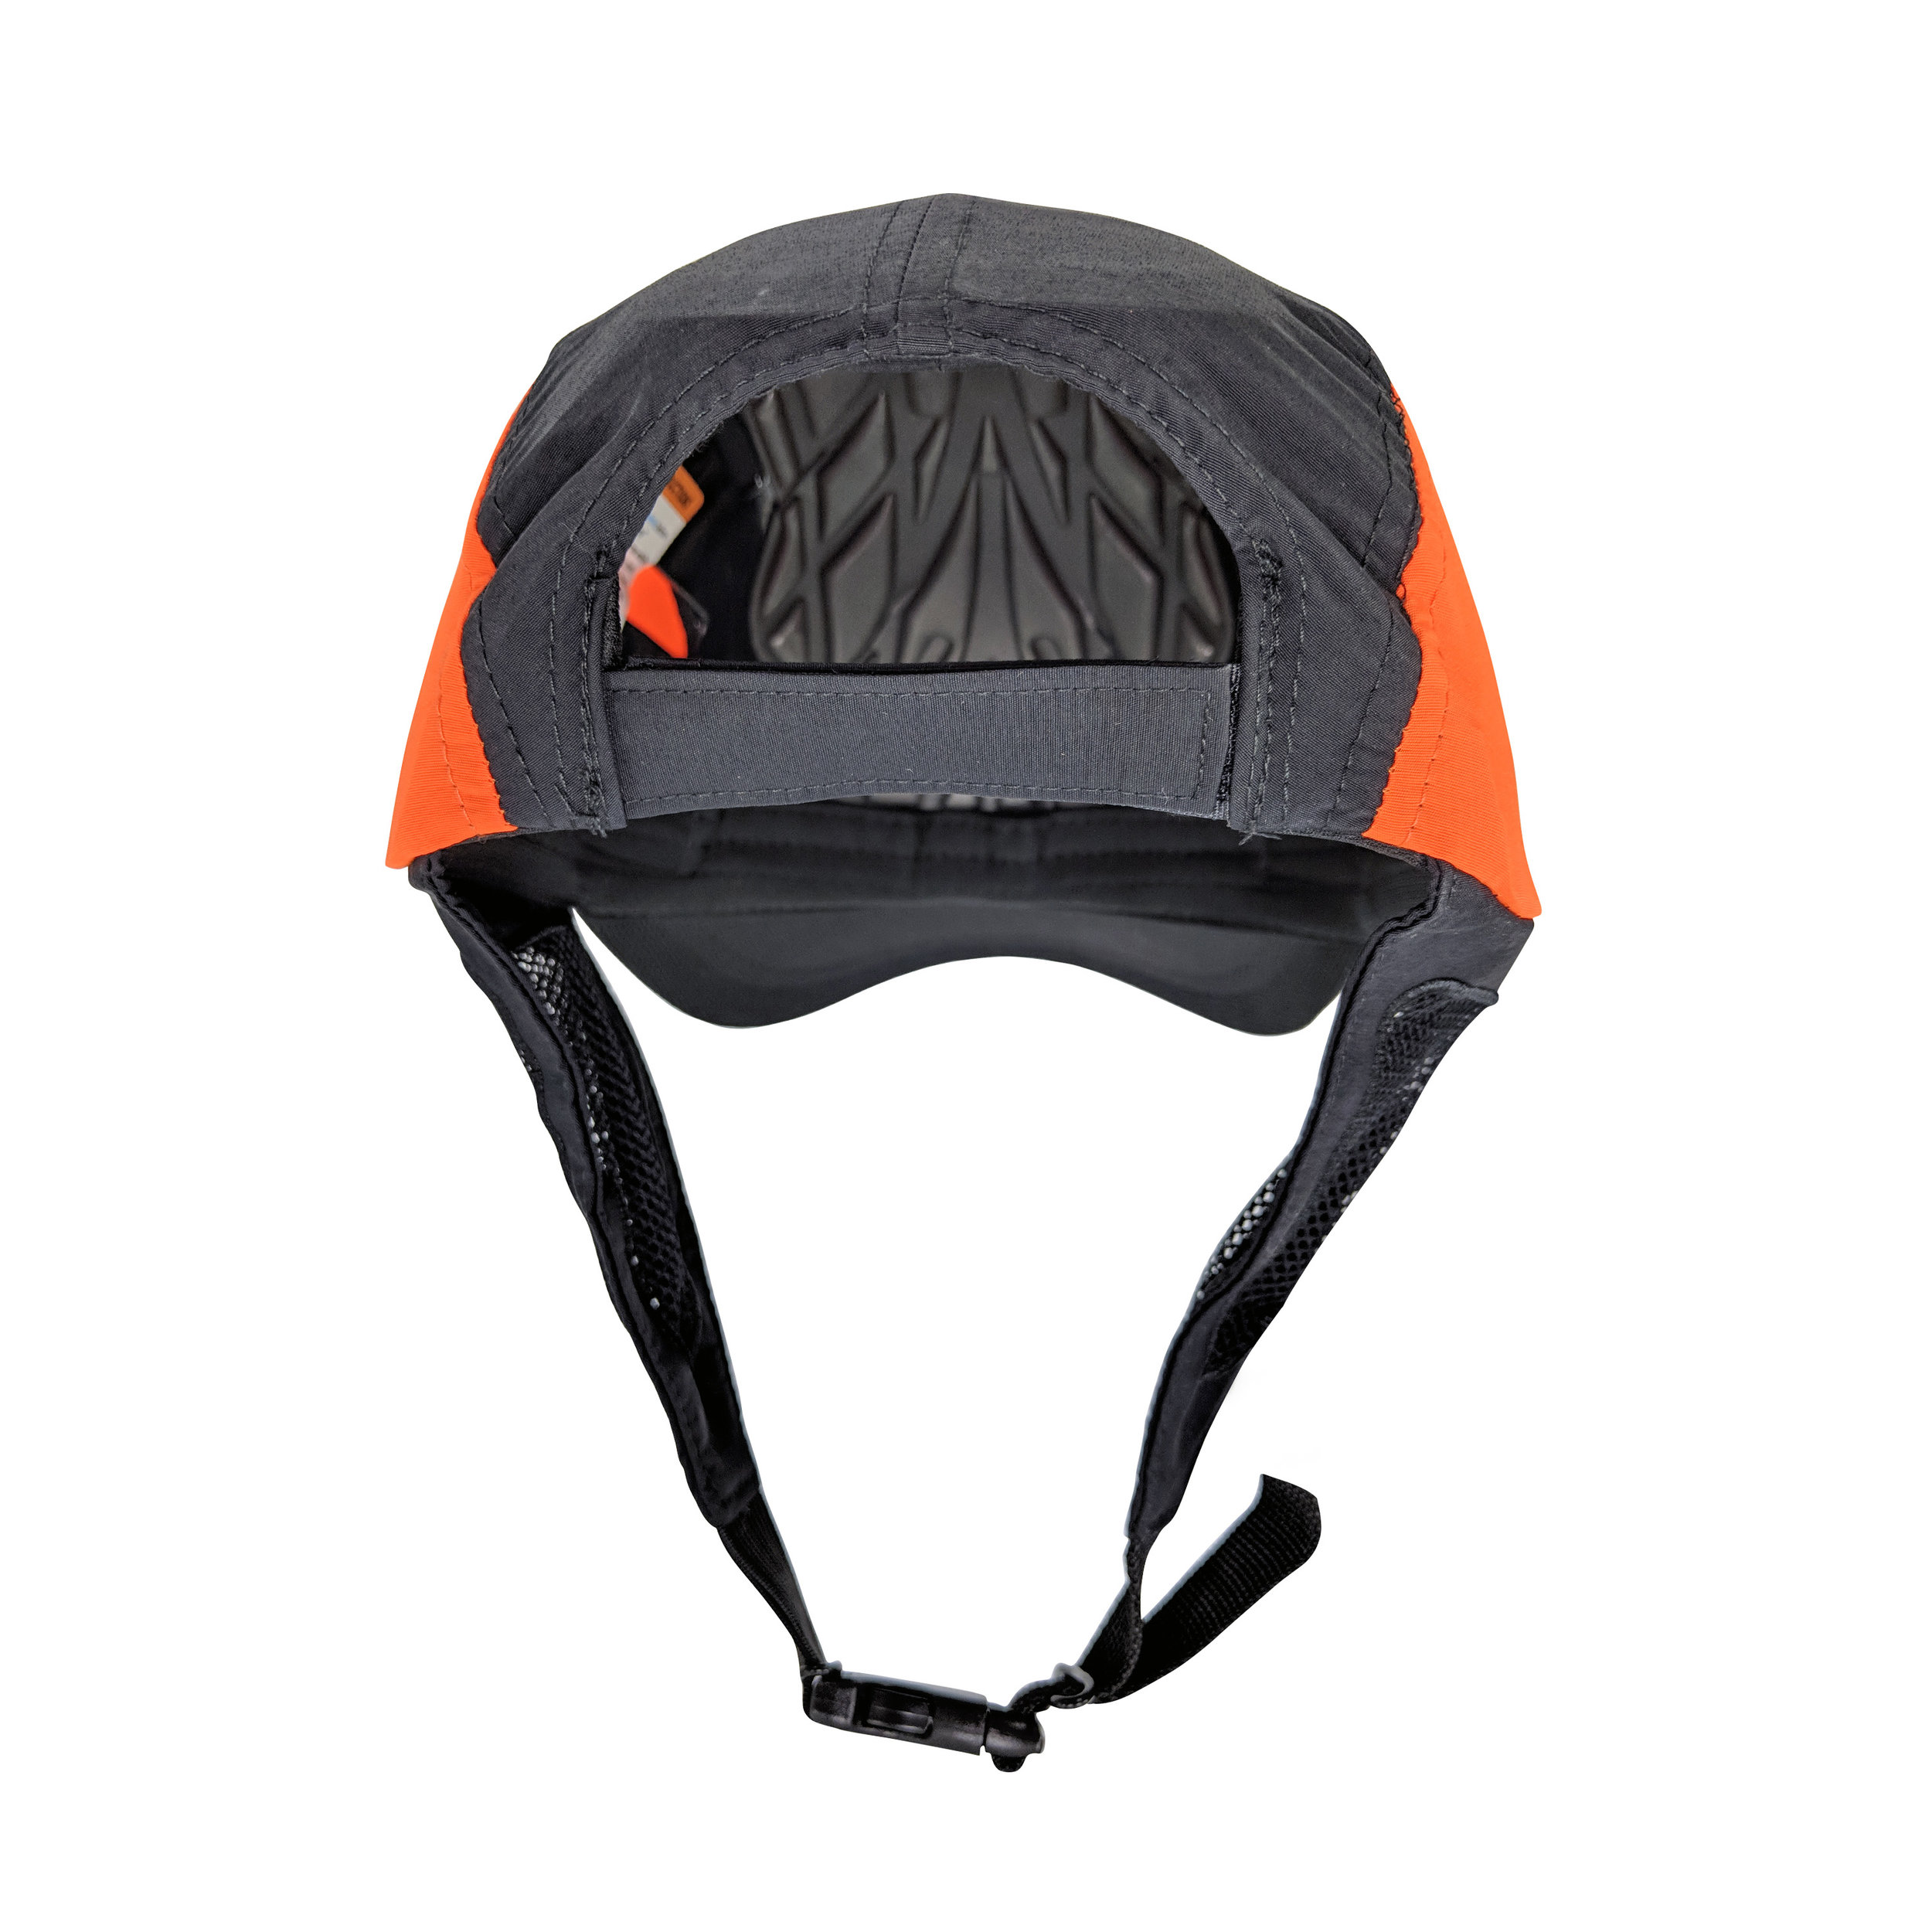 surf-brain-black-orange-back-2.jpg